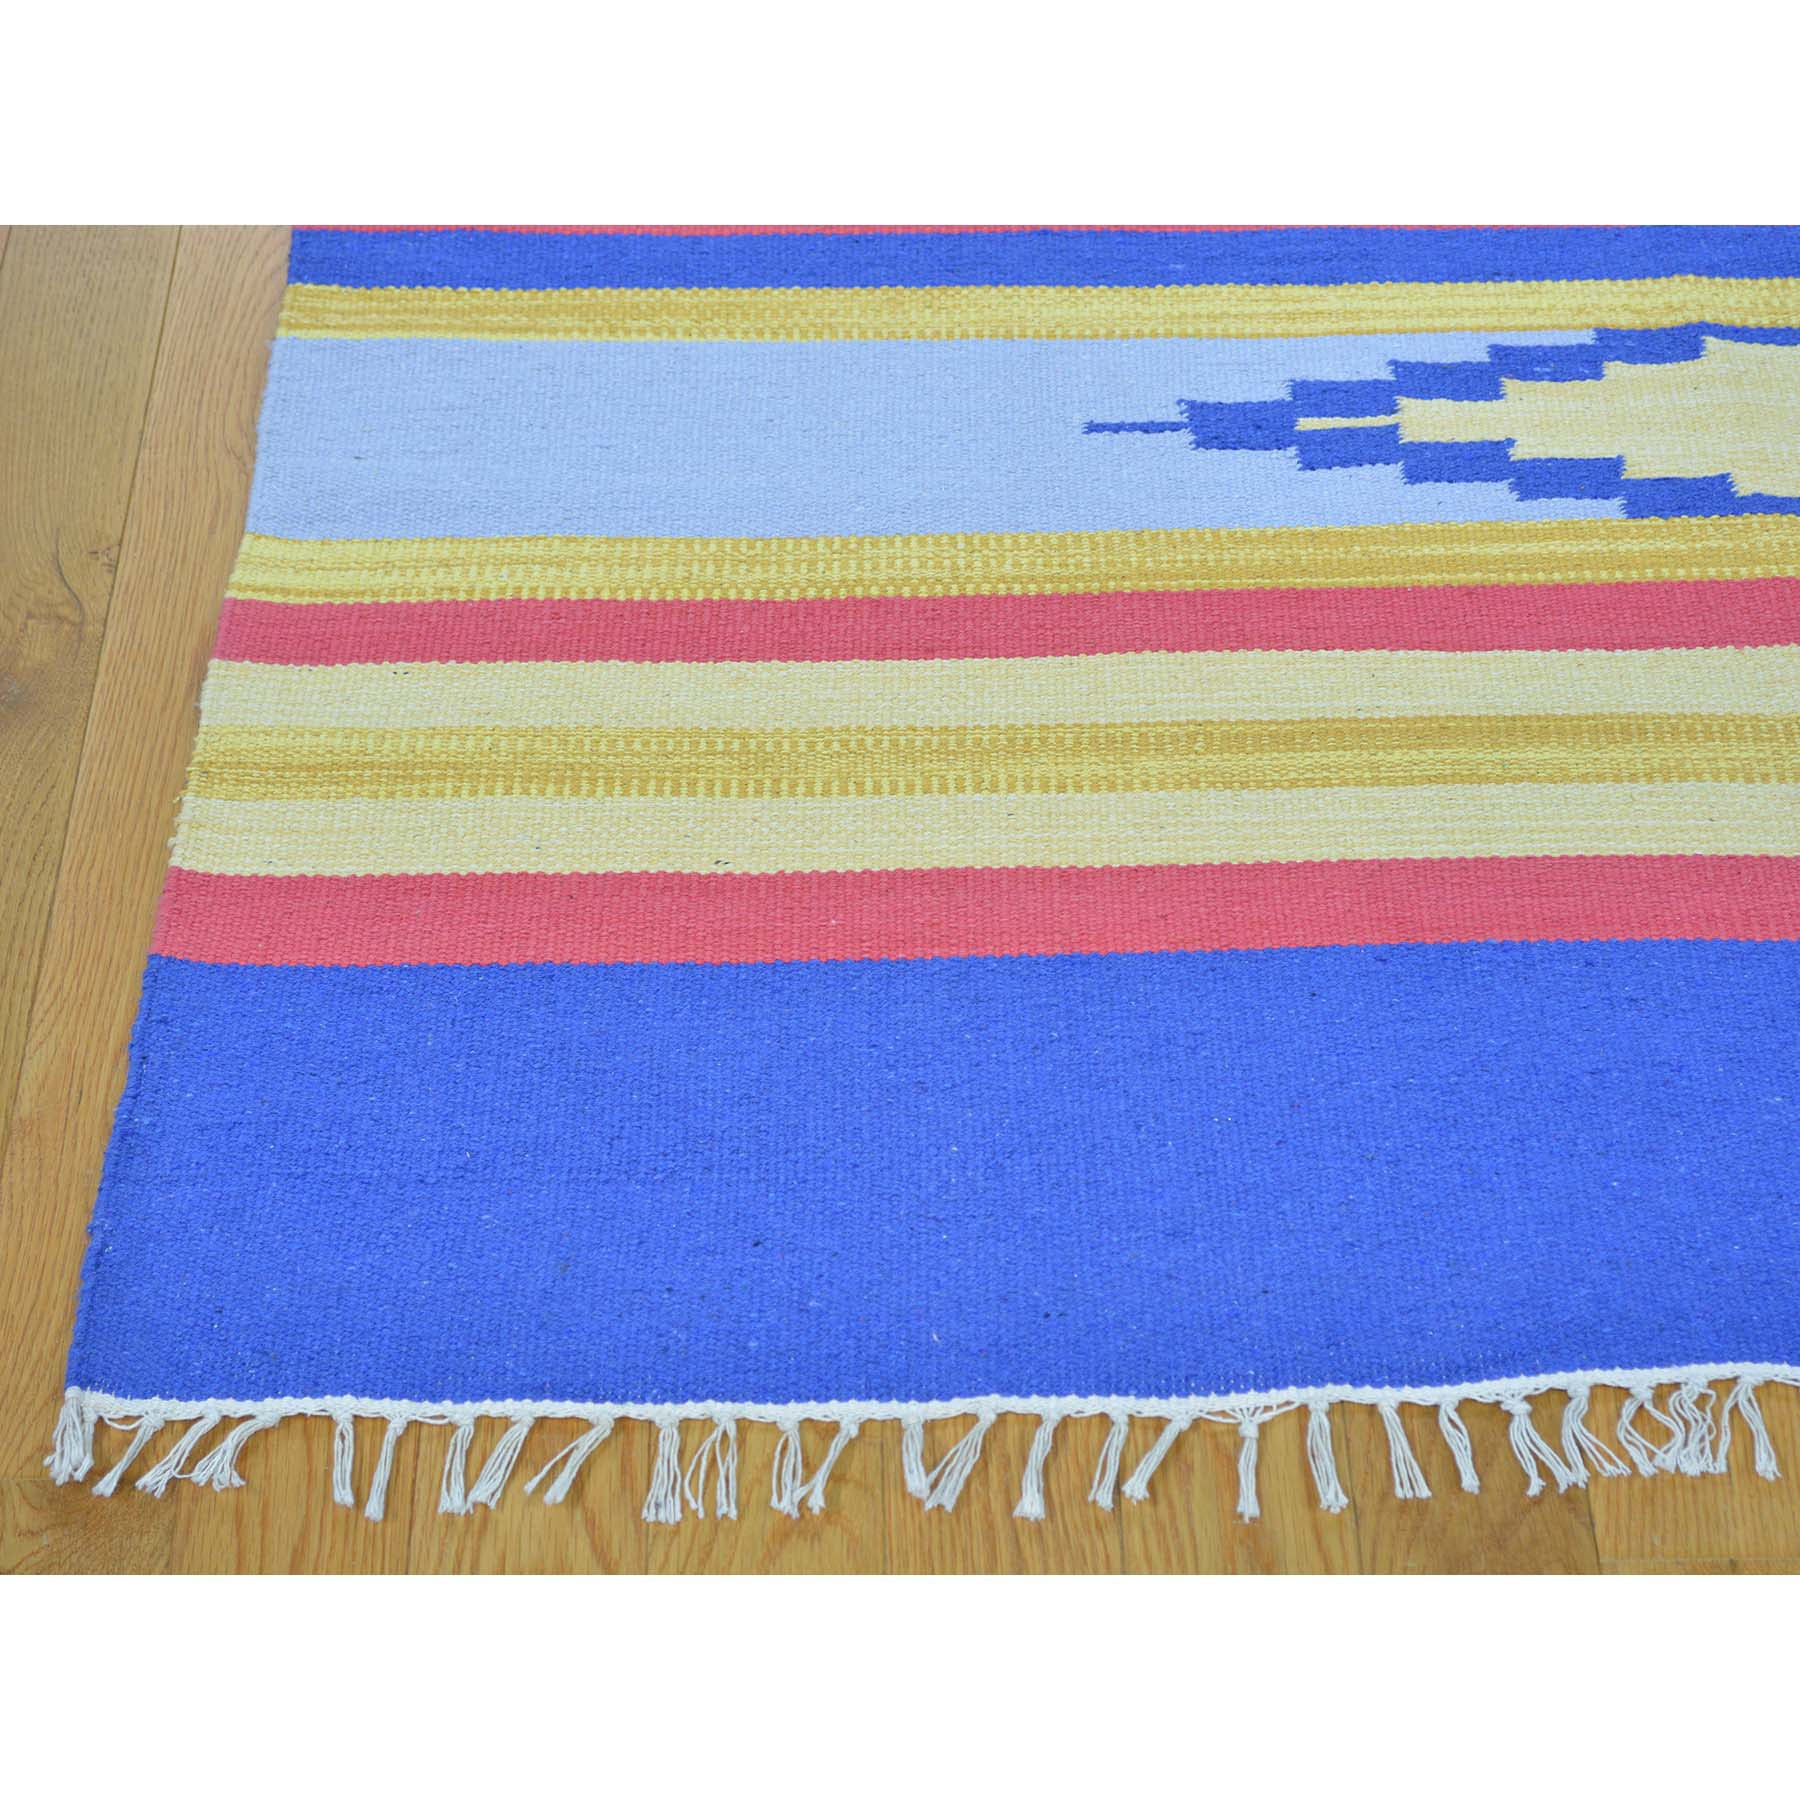 "Handmade Flat Weave Rectangle Rug > Design# SH26080 > Size: 8'-10"" x 12'-0"" [ONLINE ONLY]"